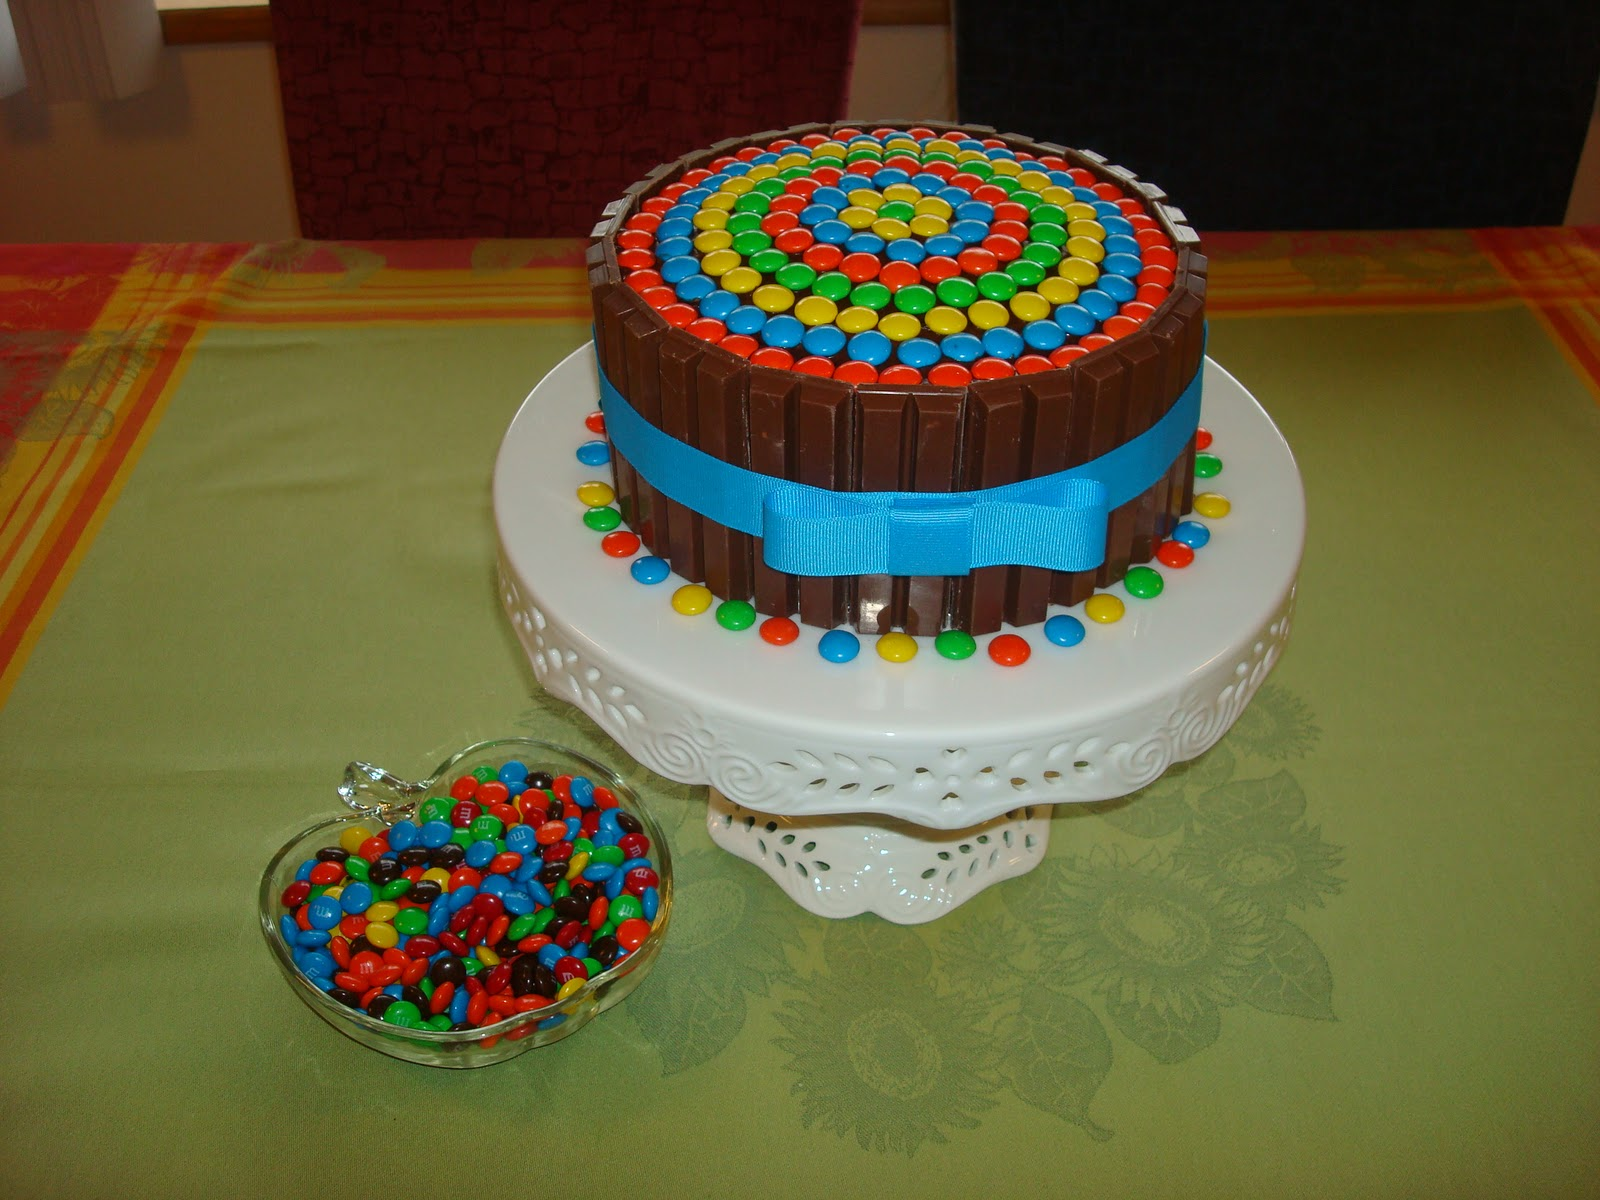 7 Year Old Birthday Cakes http://coniinthekitchen.blogspot.com/2010/11/birthday-cake-for-birthday-boy.html